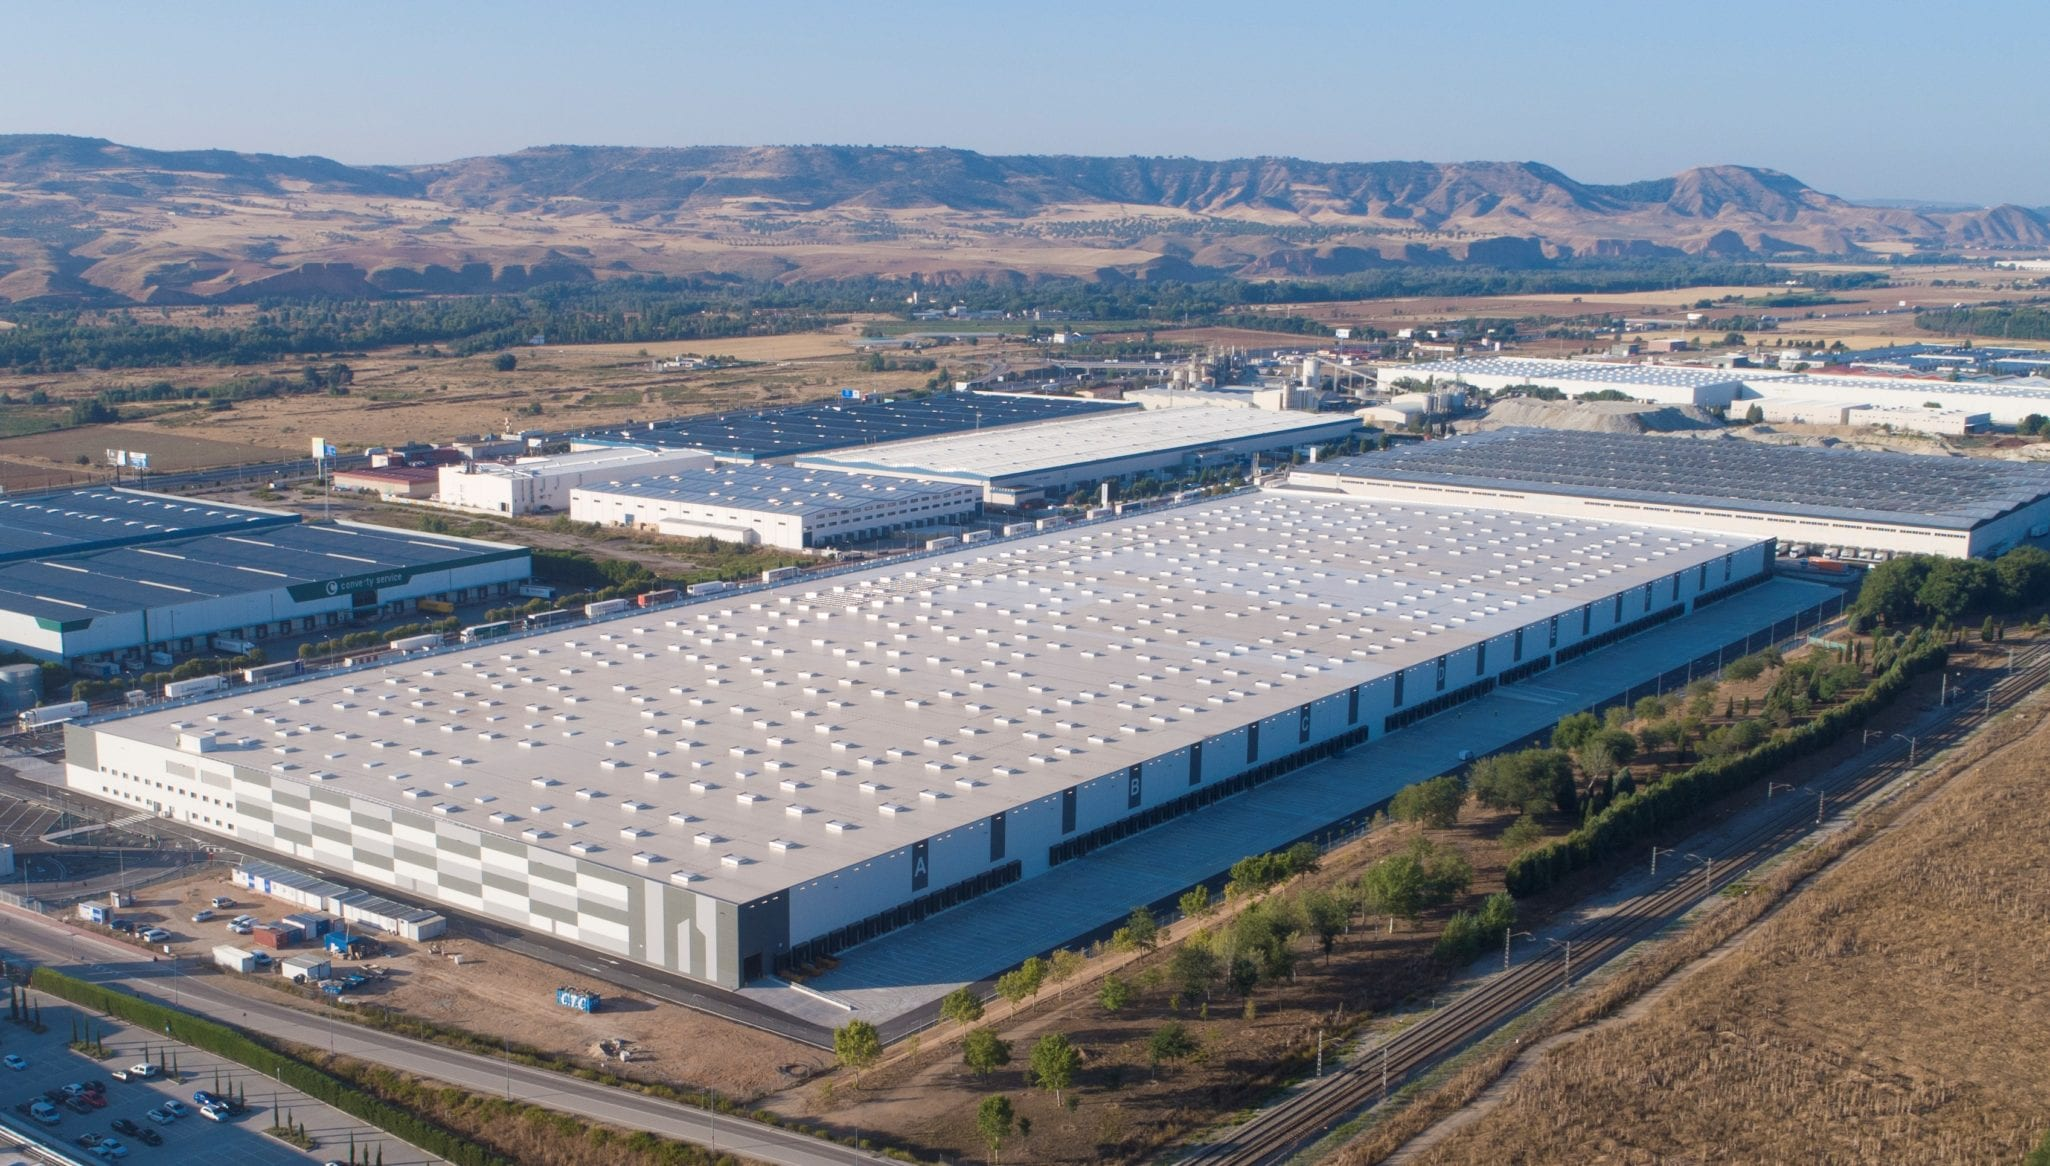 GSE Spain builds the first logistics warehouse with the highest LEED sustainability certification in Europe